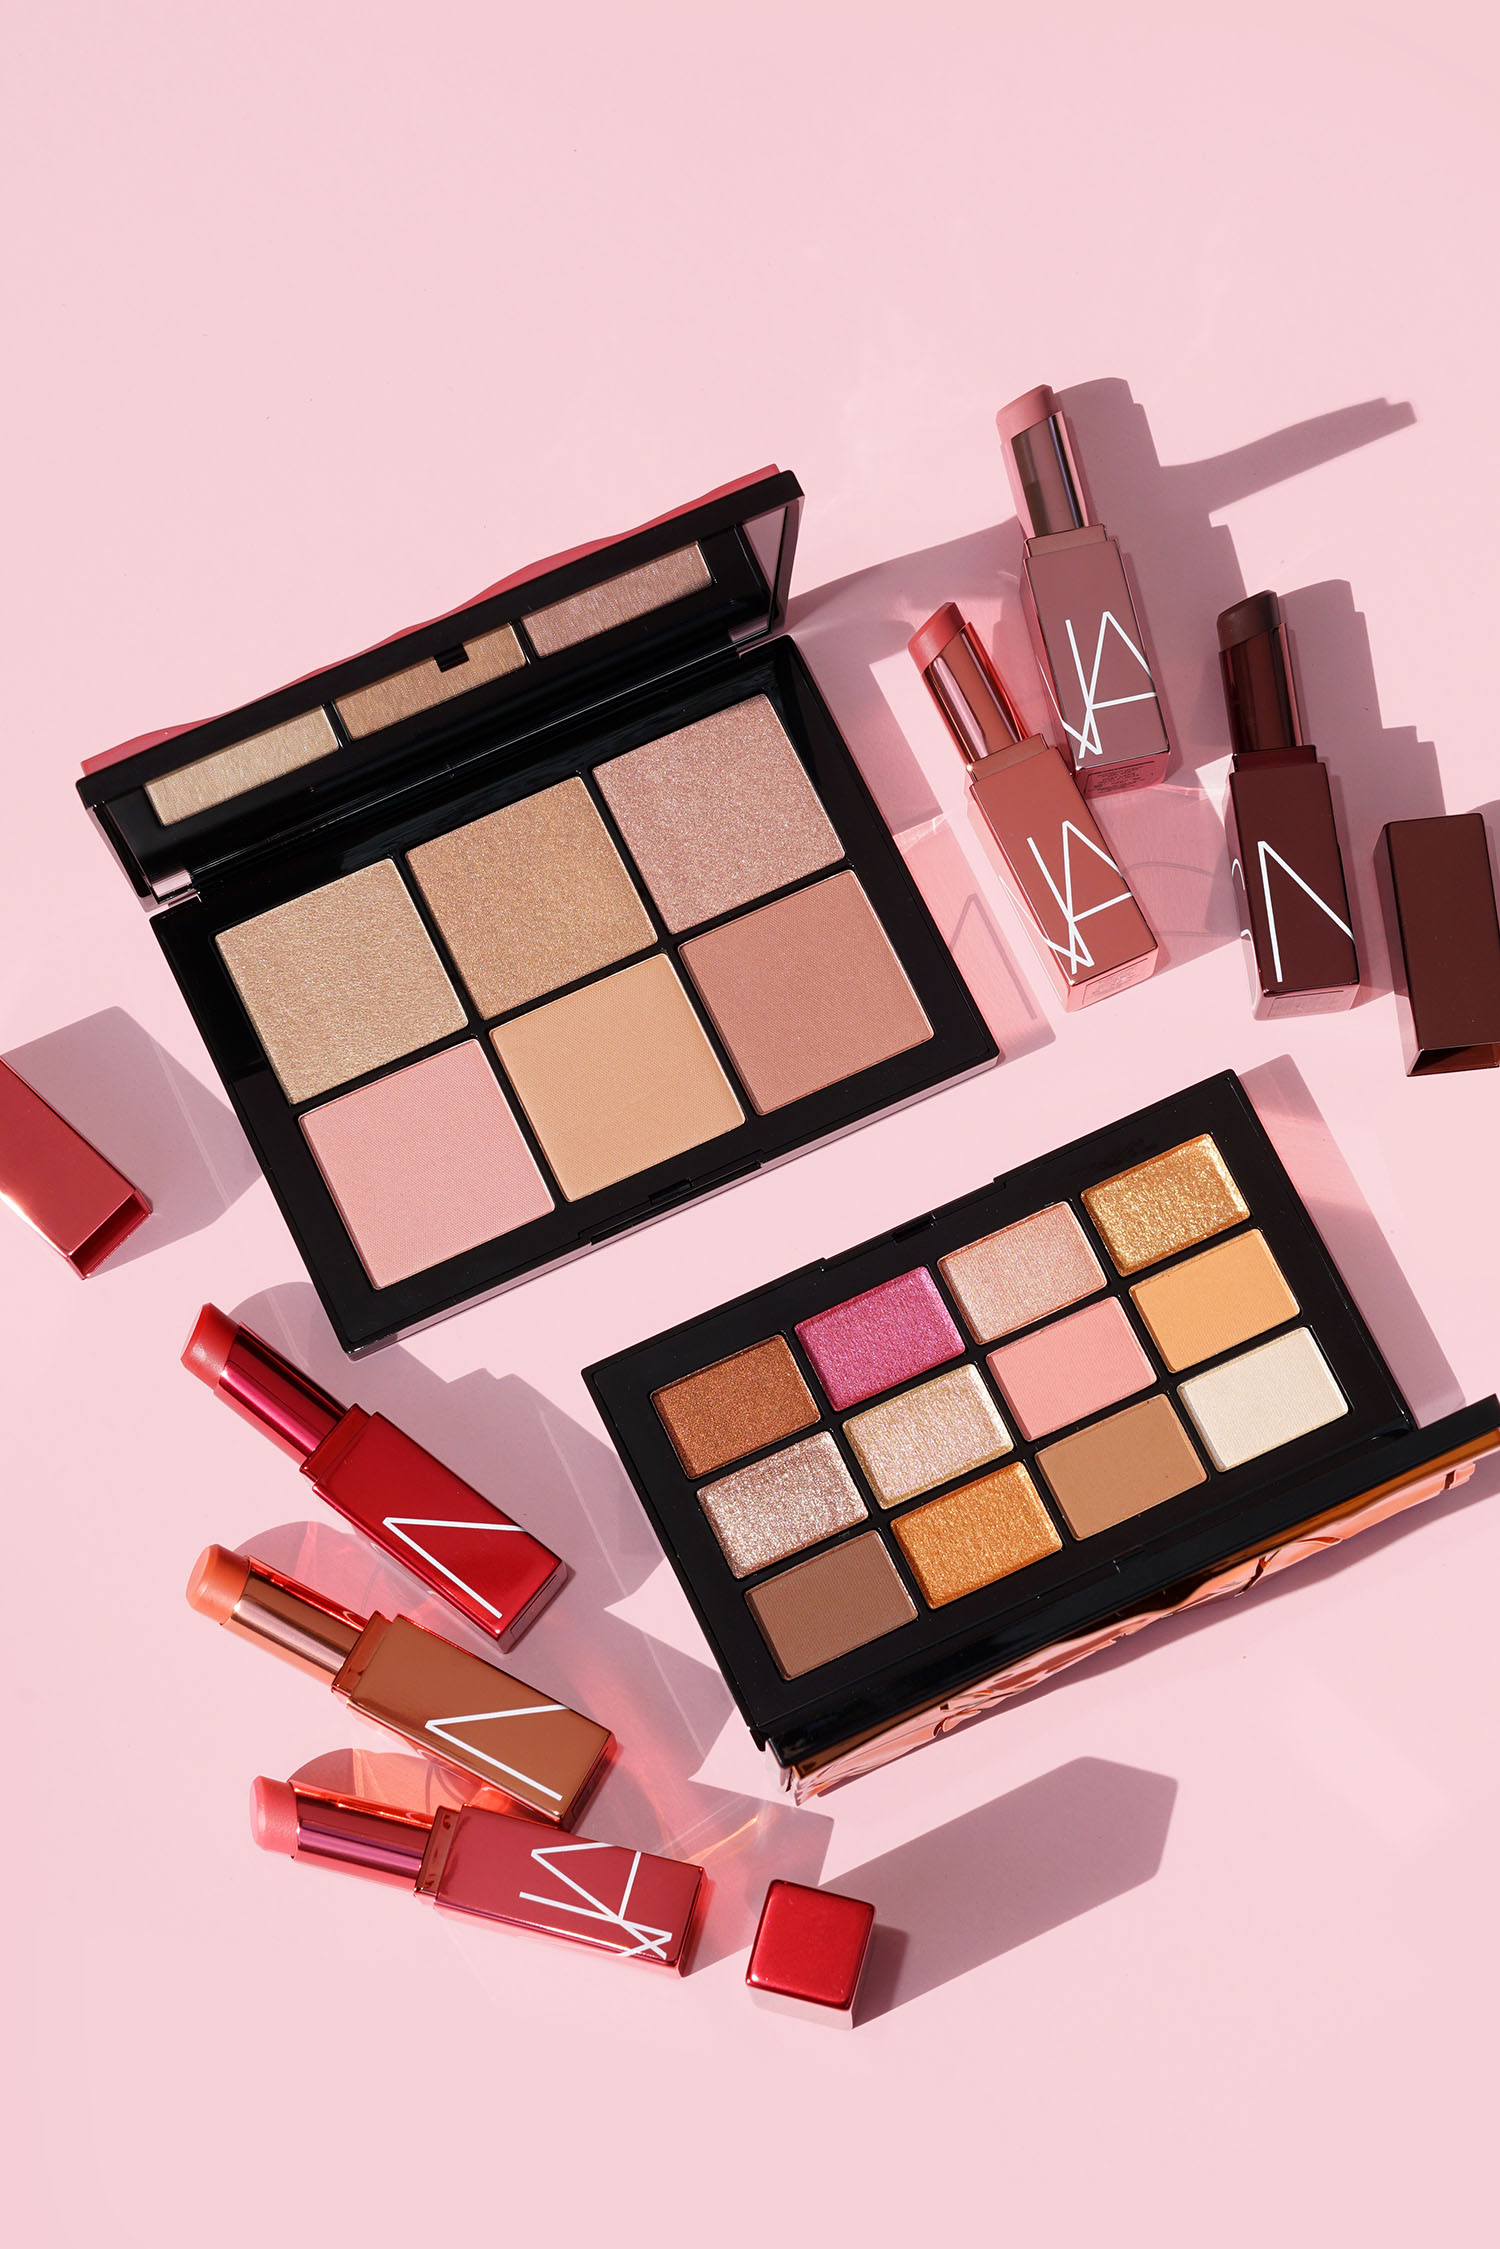 Nars 2020 Christmas NARS Afterglow Collection Review   The Beauty Look Book